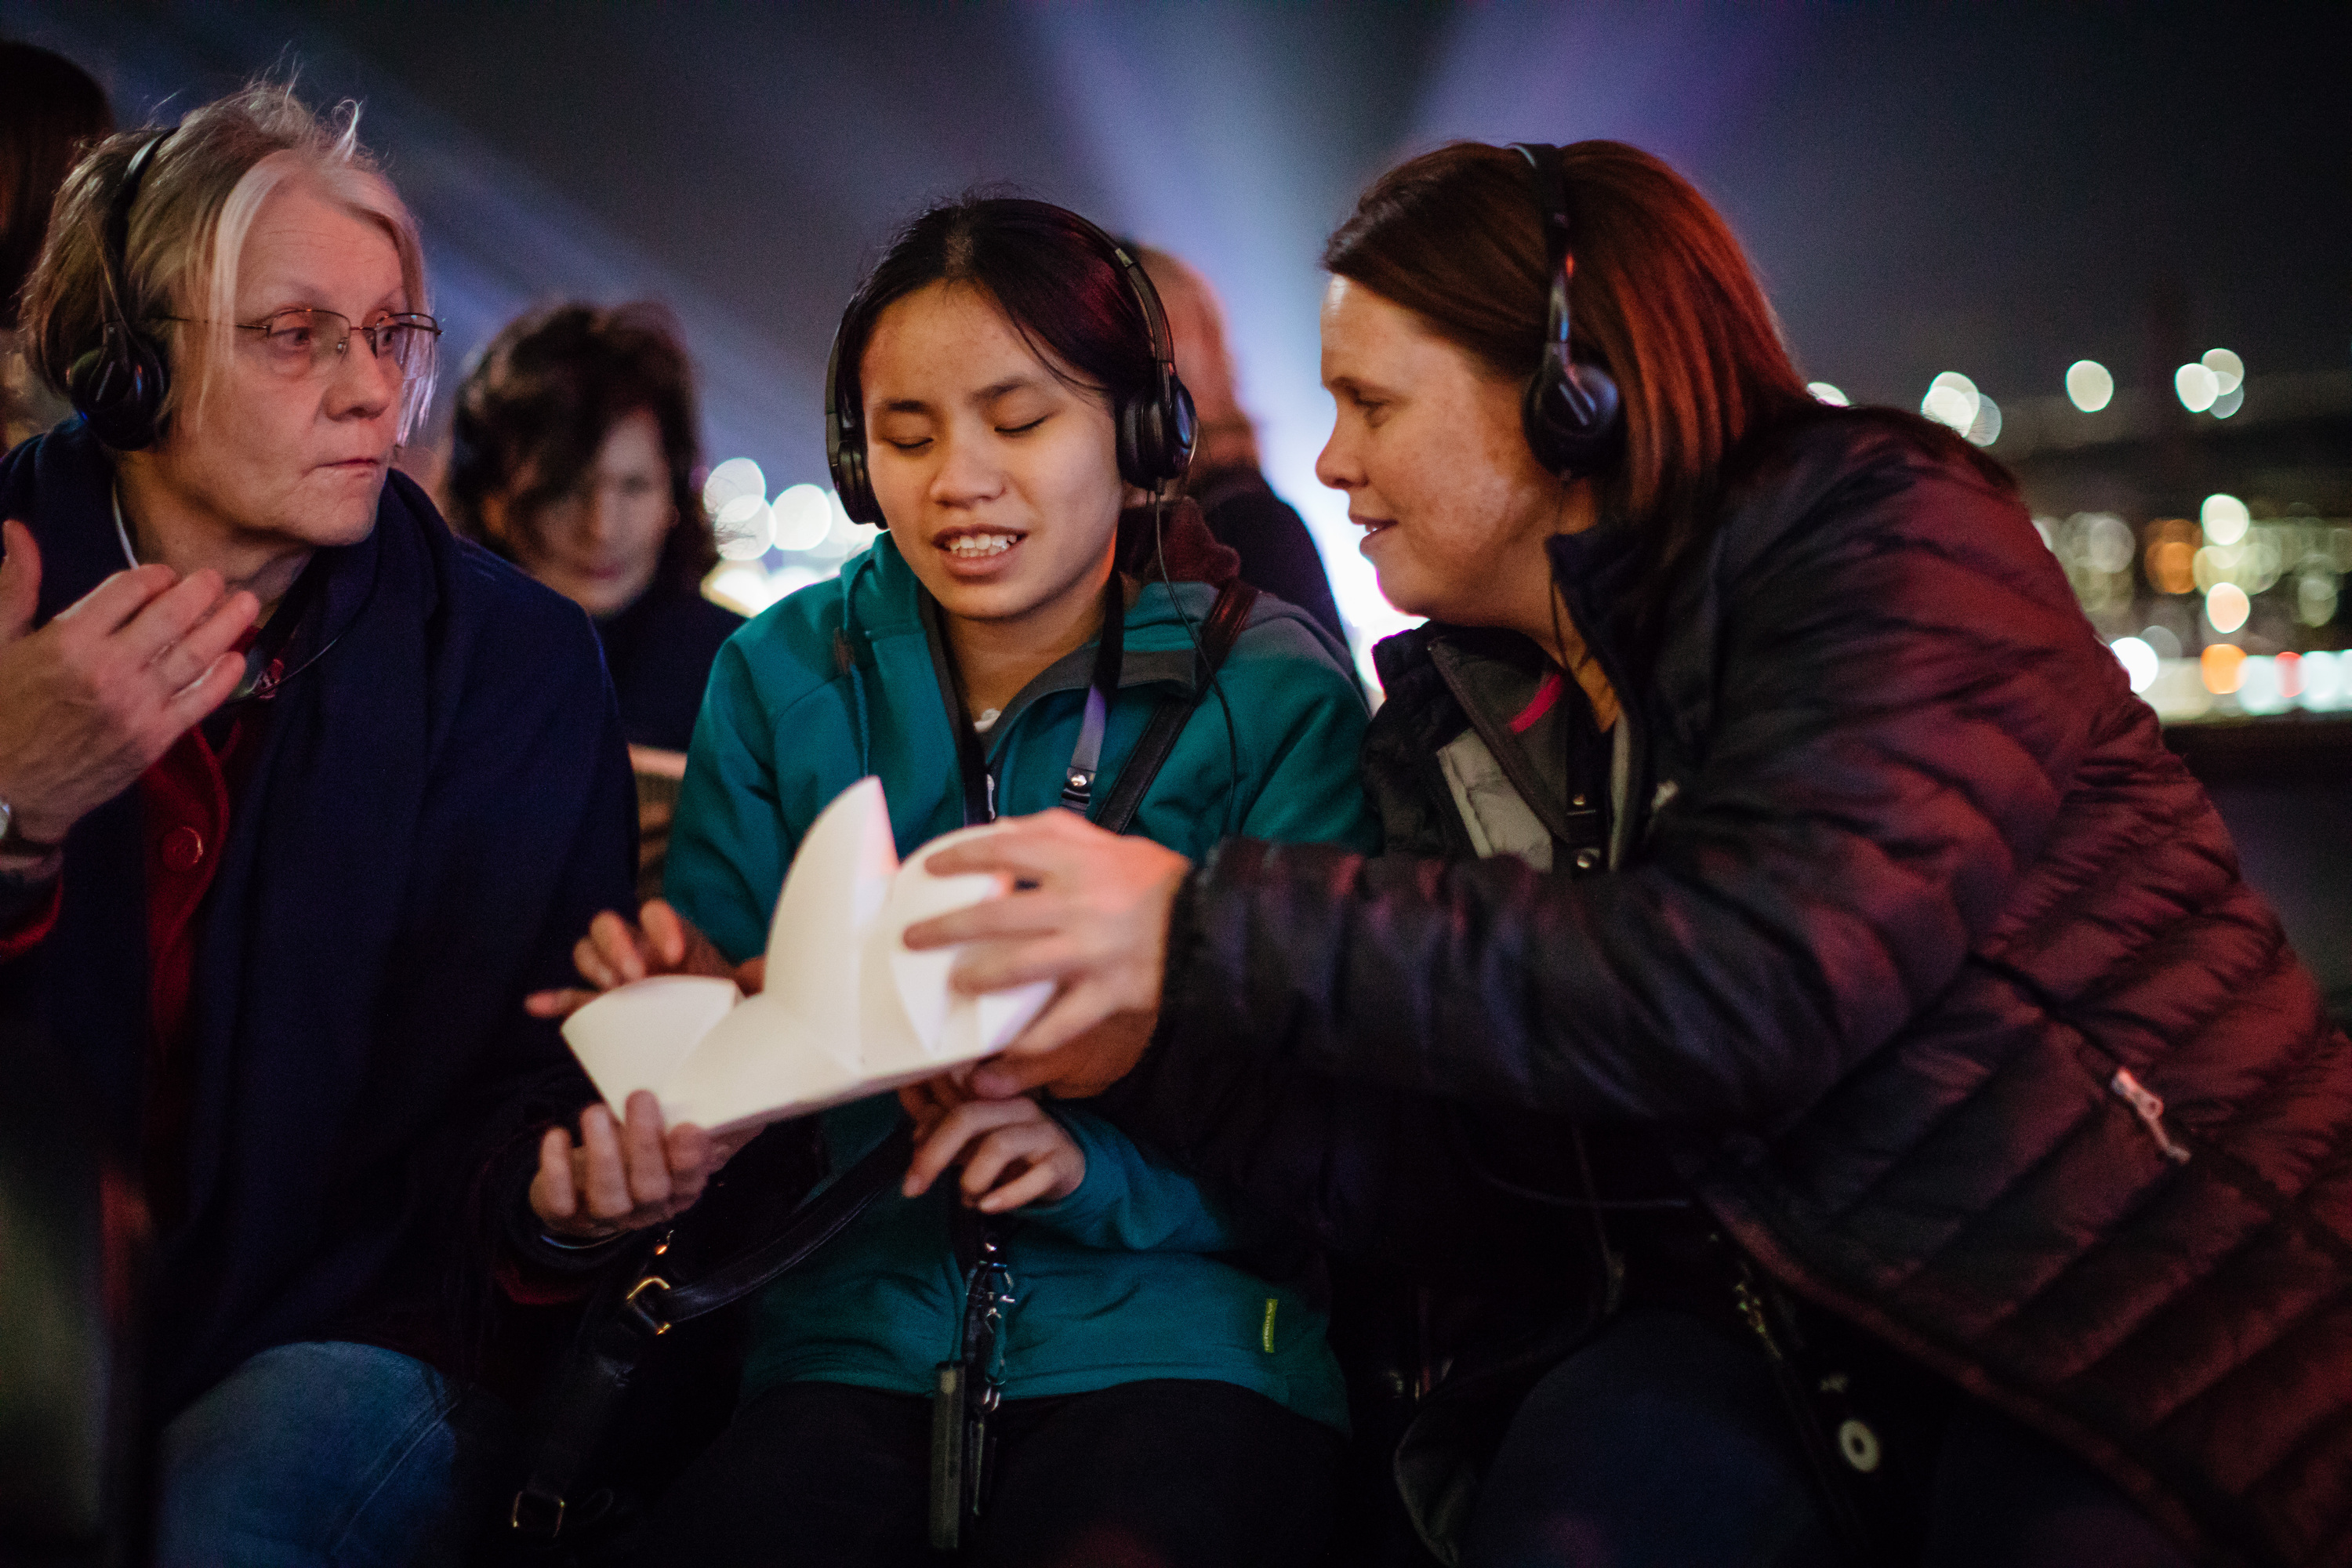 People holding a model of the Sydney Opera House on a live audio described tour during Vivid Sydney